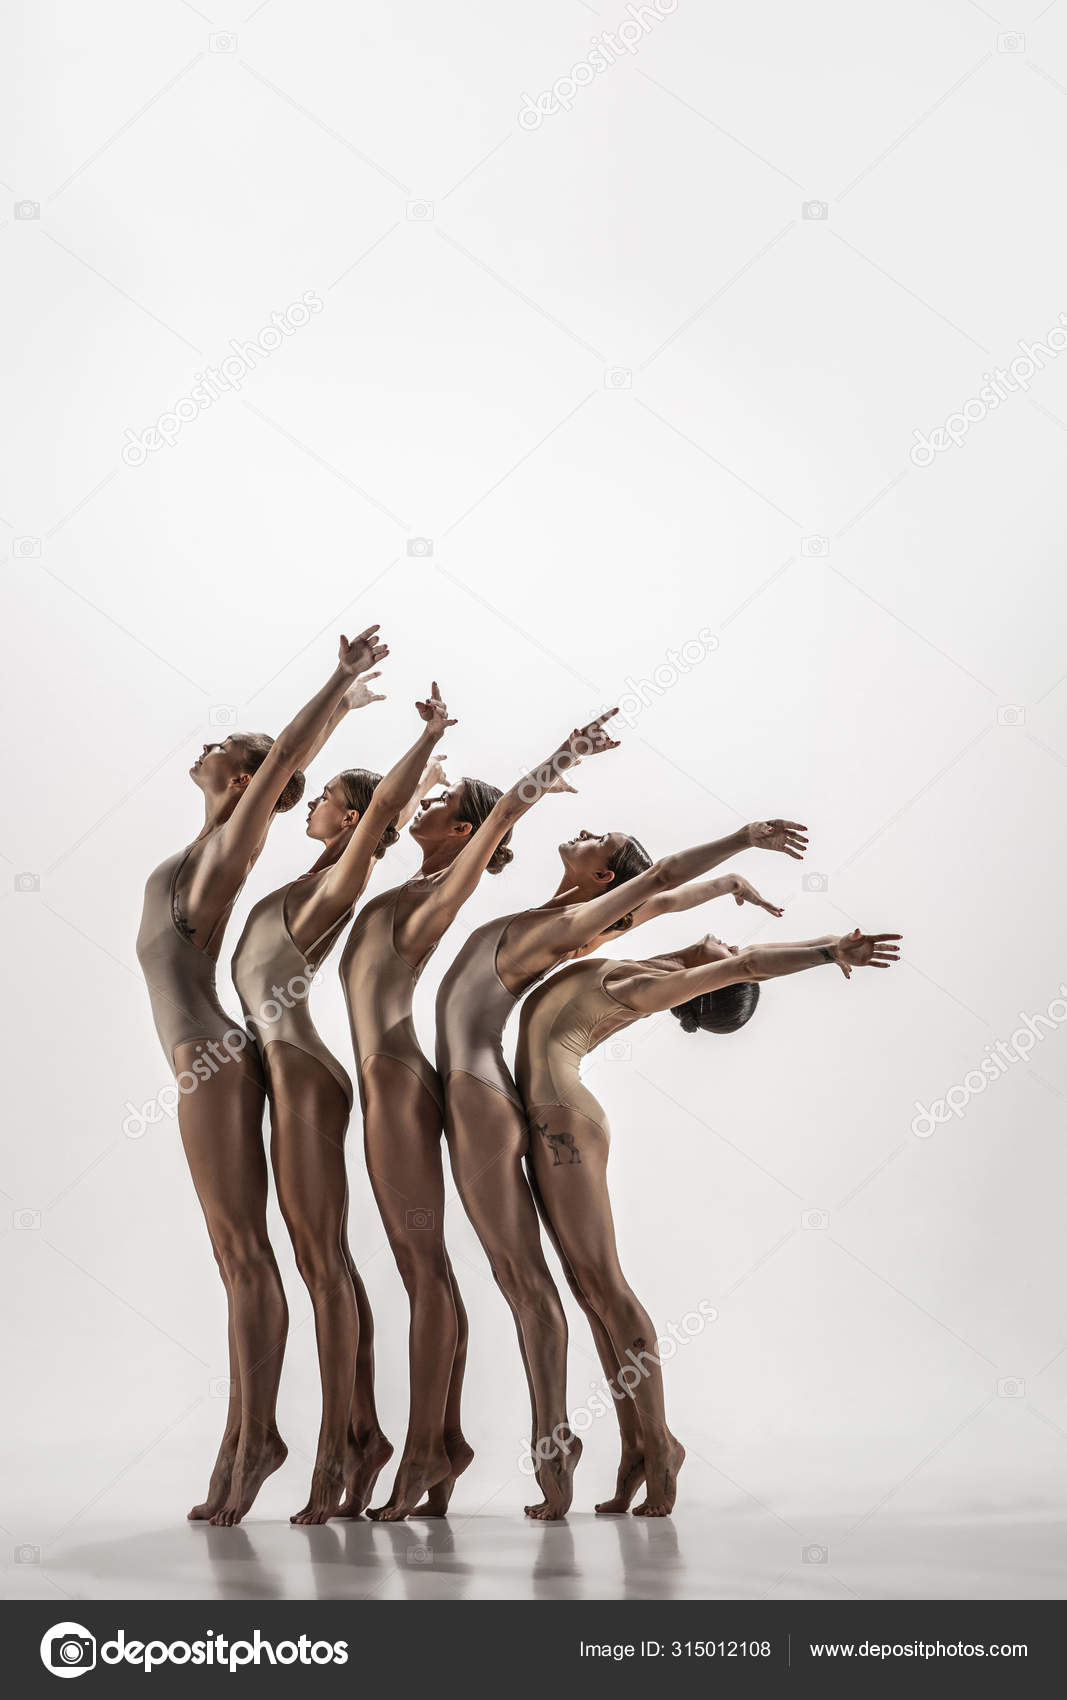 The group of modern ballet dancers. Contemporary art ballet. Young flexible  athletic men and women. — Stock Photo © vova130555@gmail.com #315012108